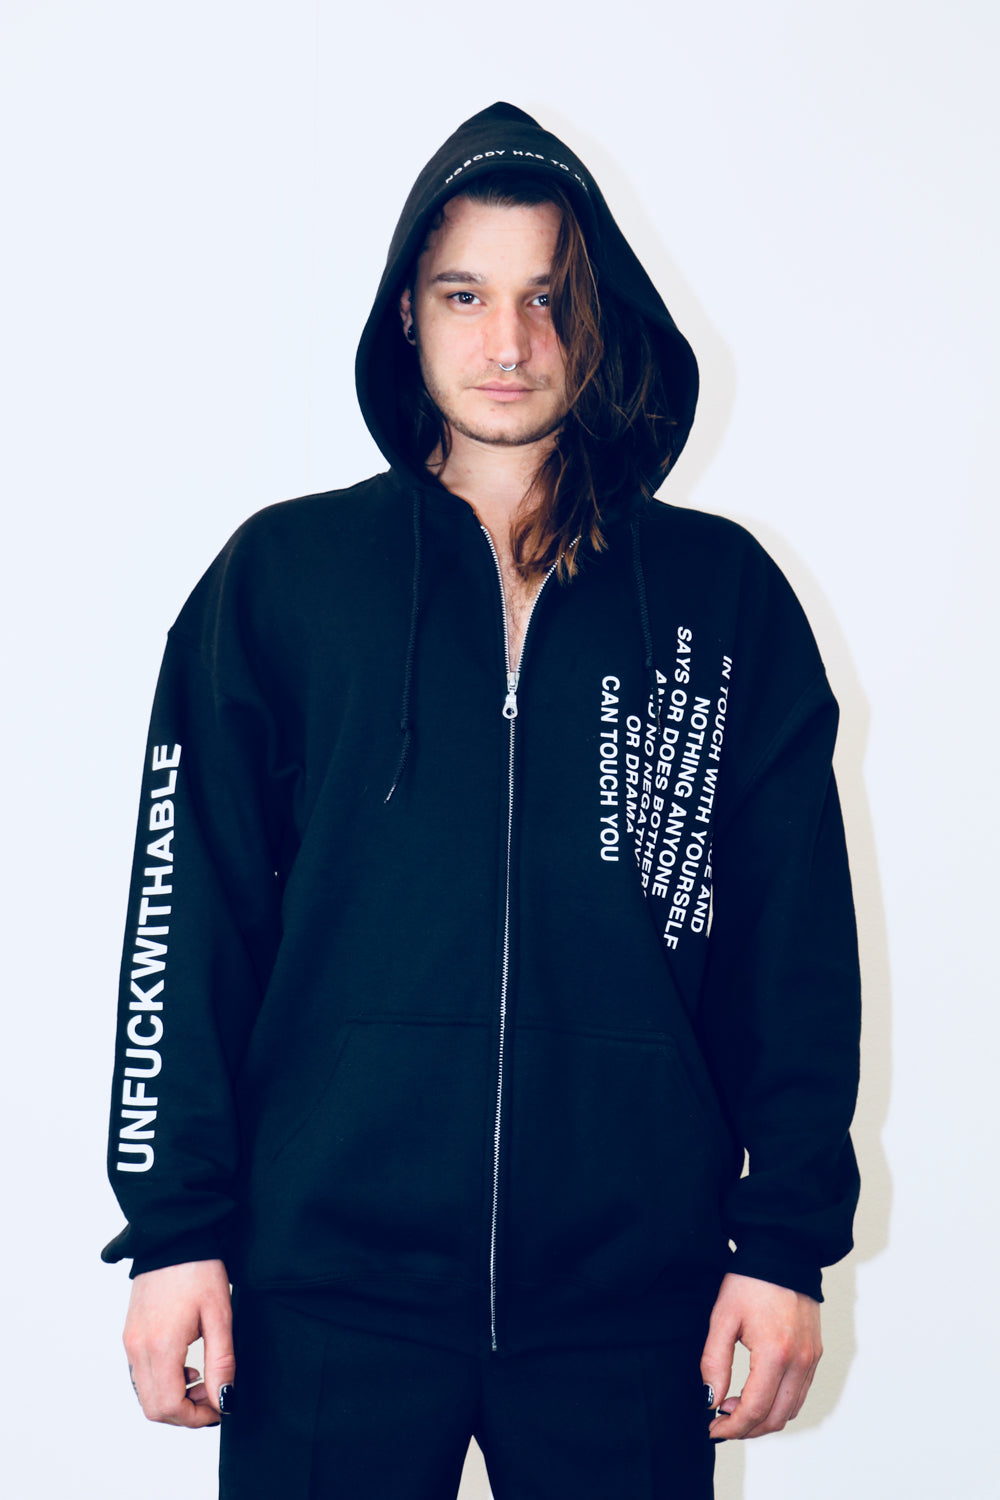 Zip hoodie THE UNFUCKWITHABLES black 1 - NOBODY HAS TO KNOW